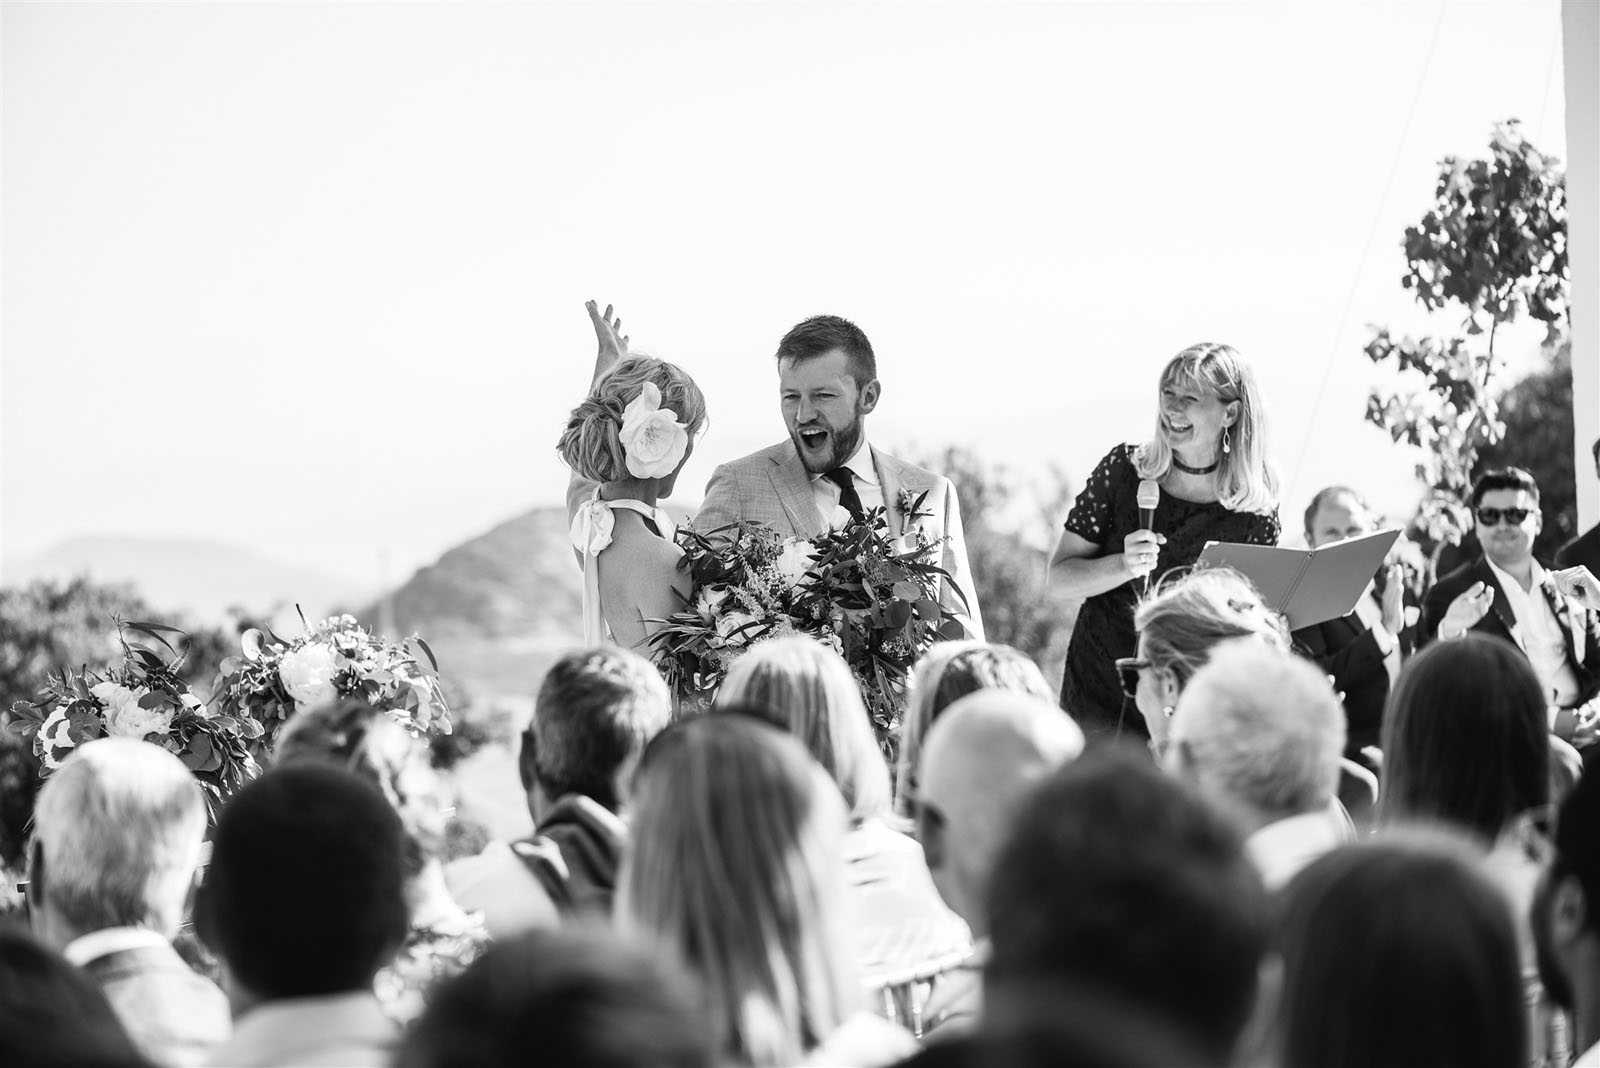 black and white photo by Andreas Holm of bespoke wedding ceremony by Celebrant Spain